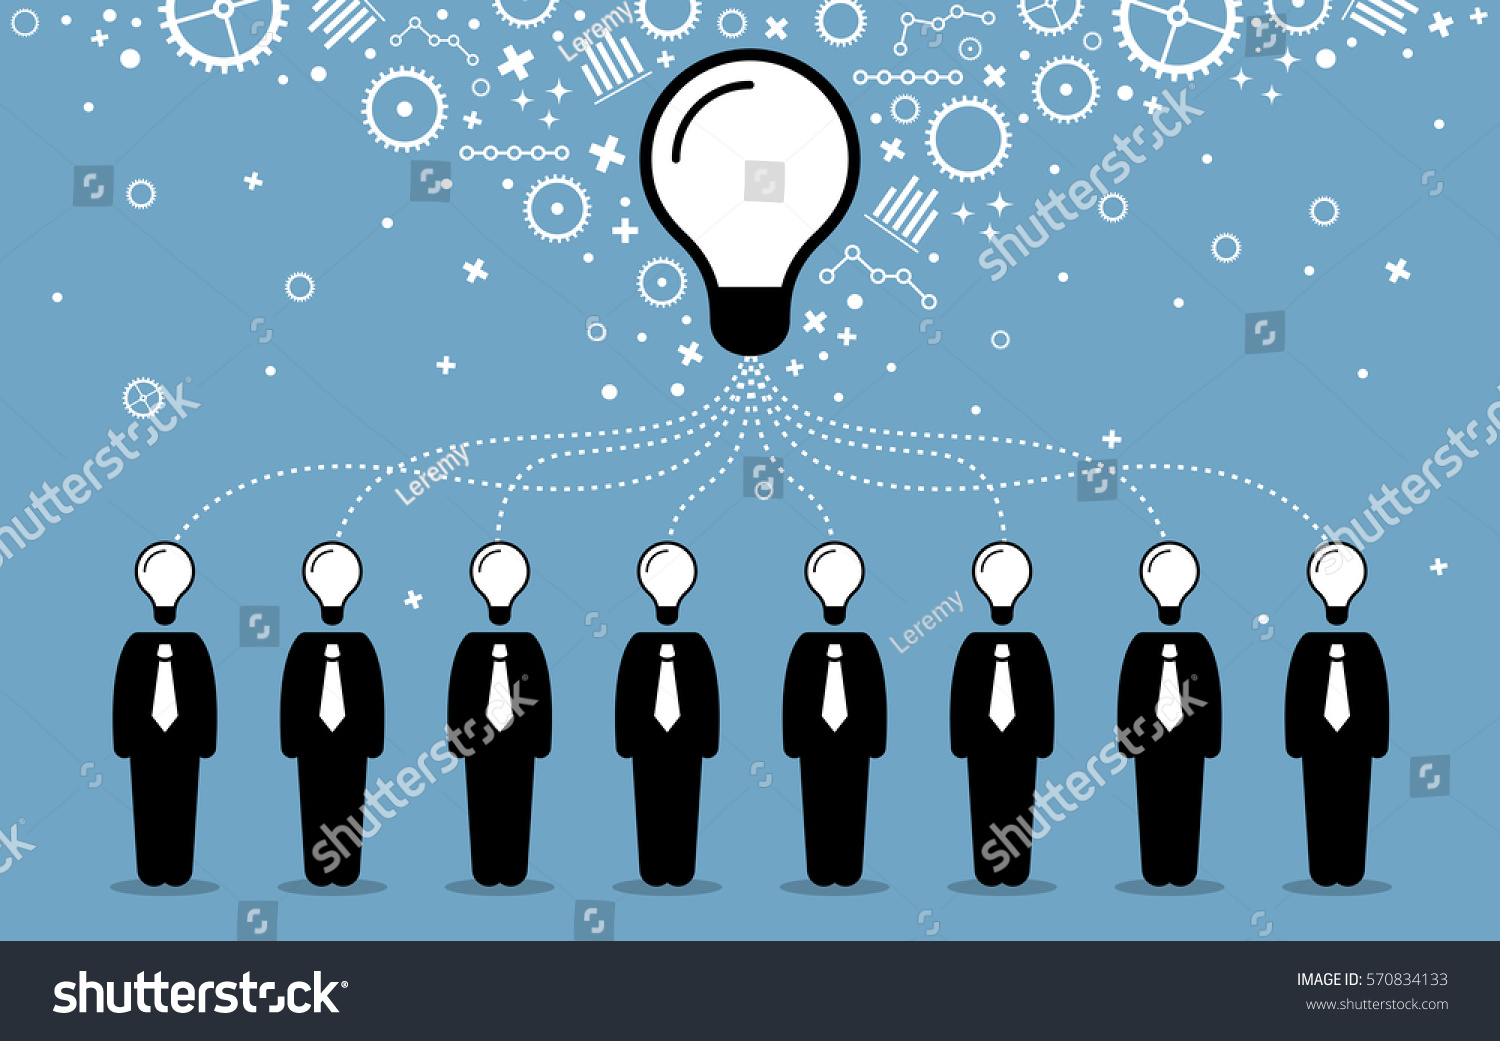 Vecteur clipart de main sur 201 cologie conscience image concept - Business People Combining Their Ideas Minds And Thoughts To Create A Bigger And Better